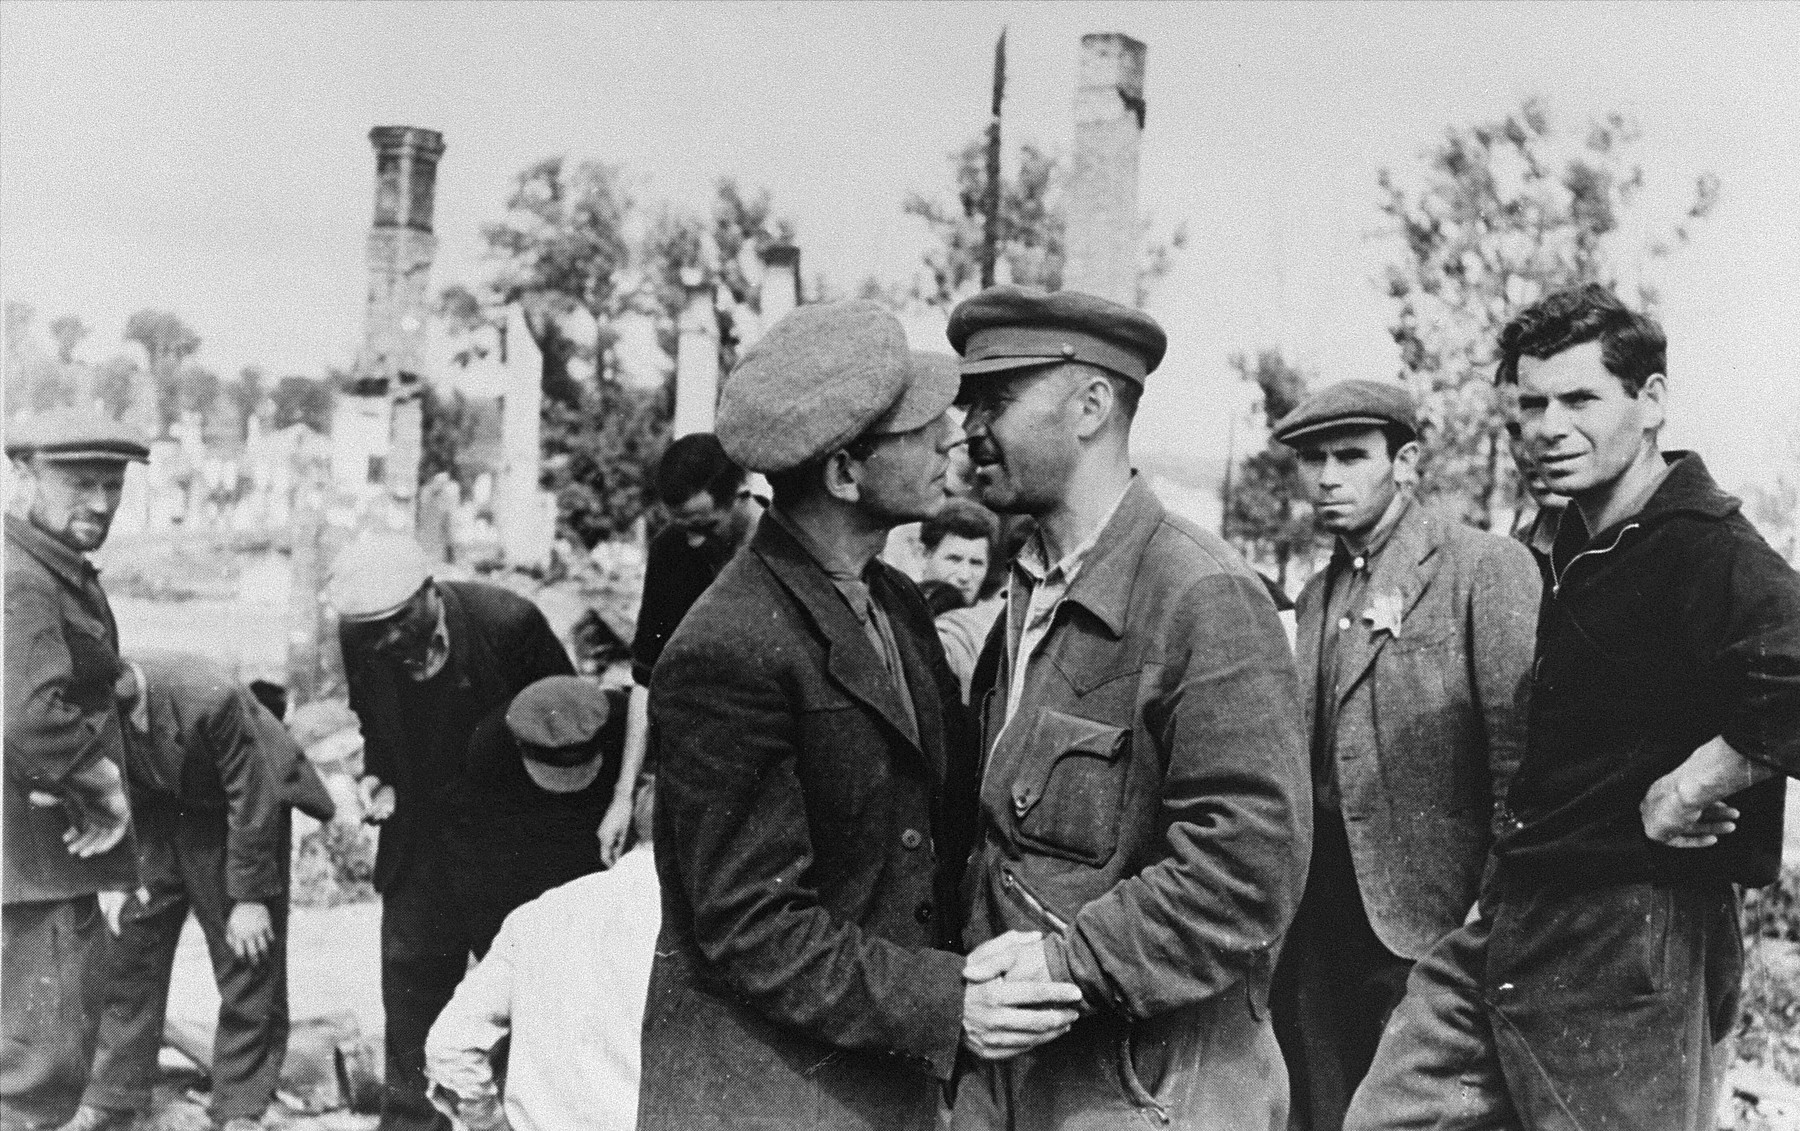 Kovno ghetto survivors greet one another amid the ruins of the ghetto.    Jona Wisgardisky is pictured second from the right.